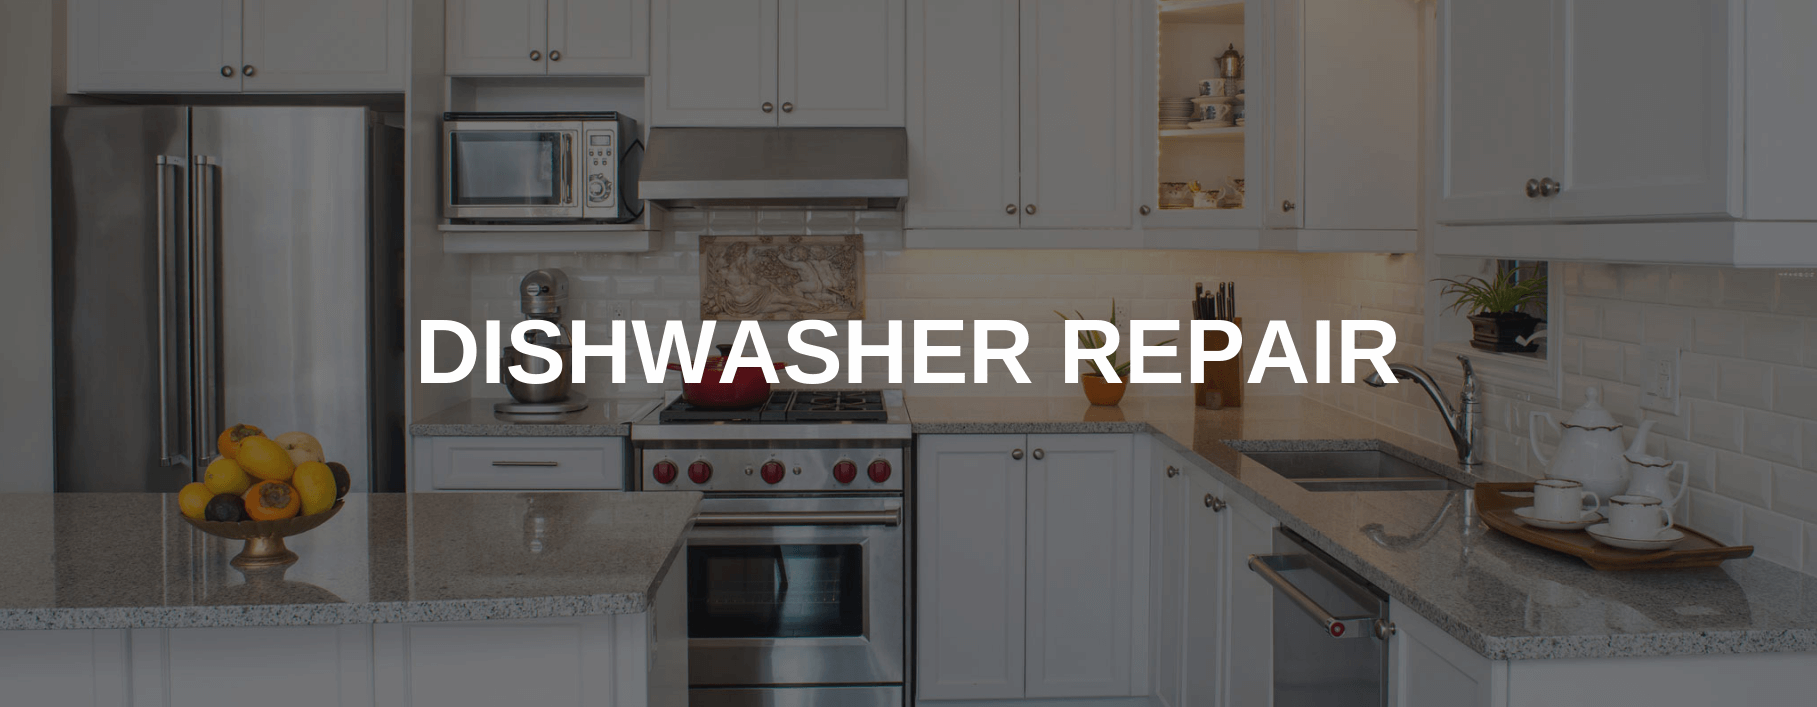 dishwasher repair alexandria